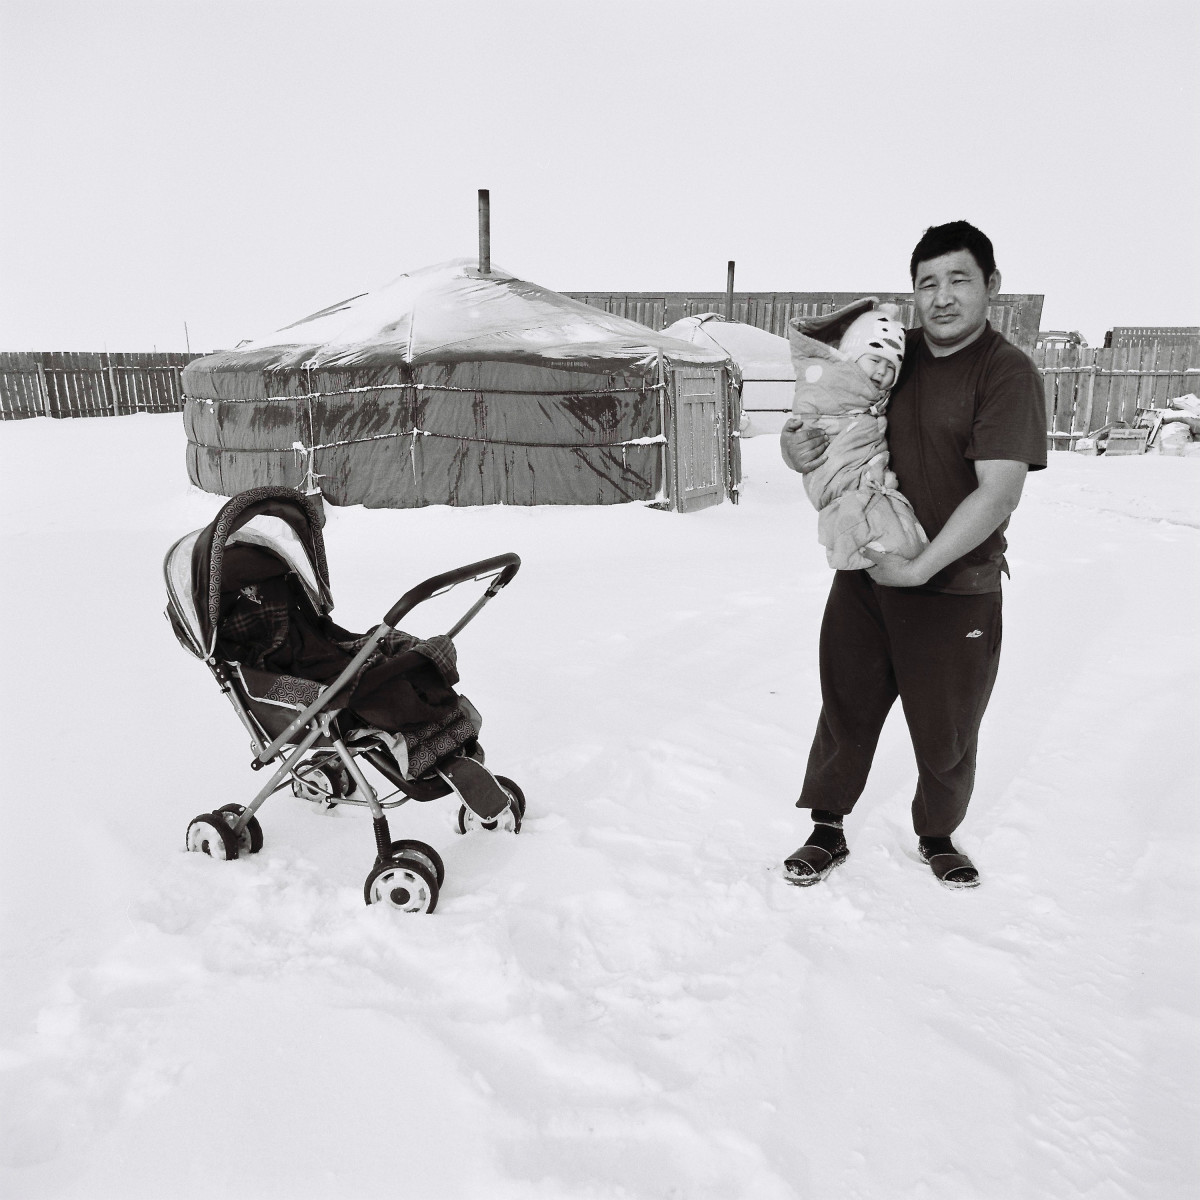 After losing all his animals to the harsh winter conditions in Outer Mongolia, this unemployed herdsman looks after his baby while his wife seeks work in a coal mine.